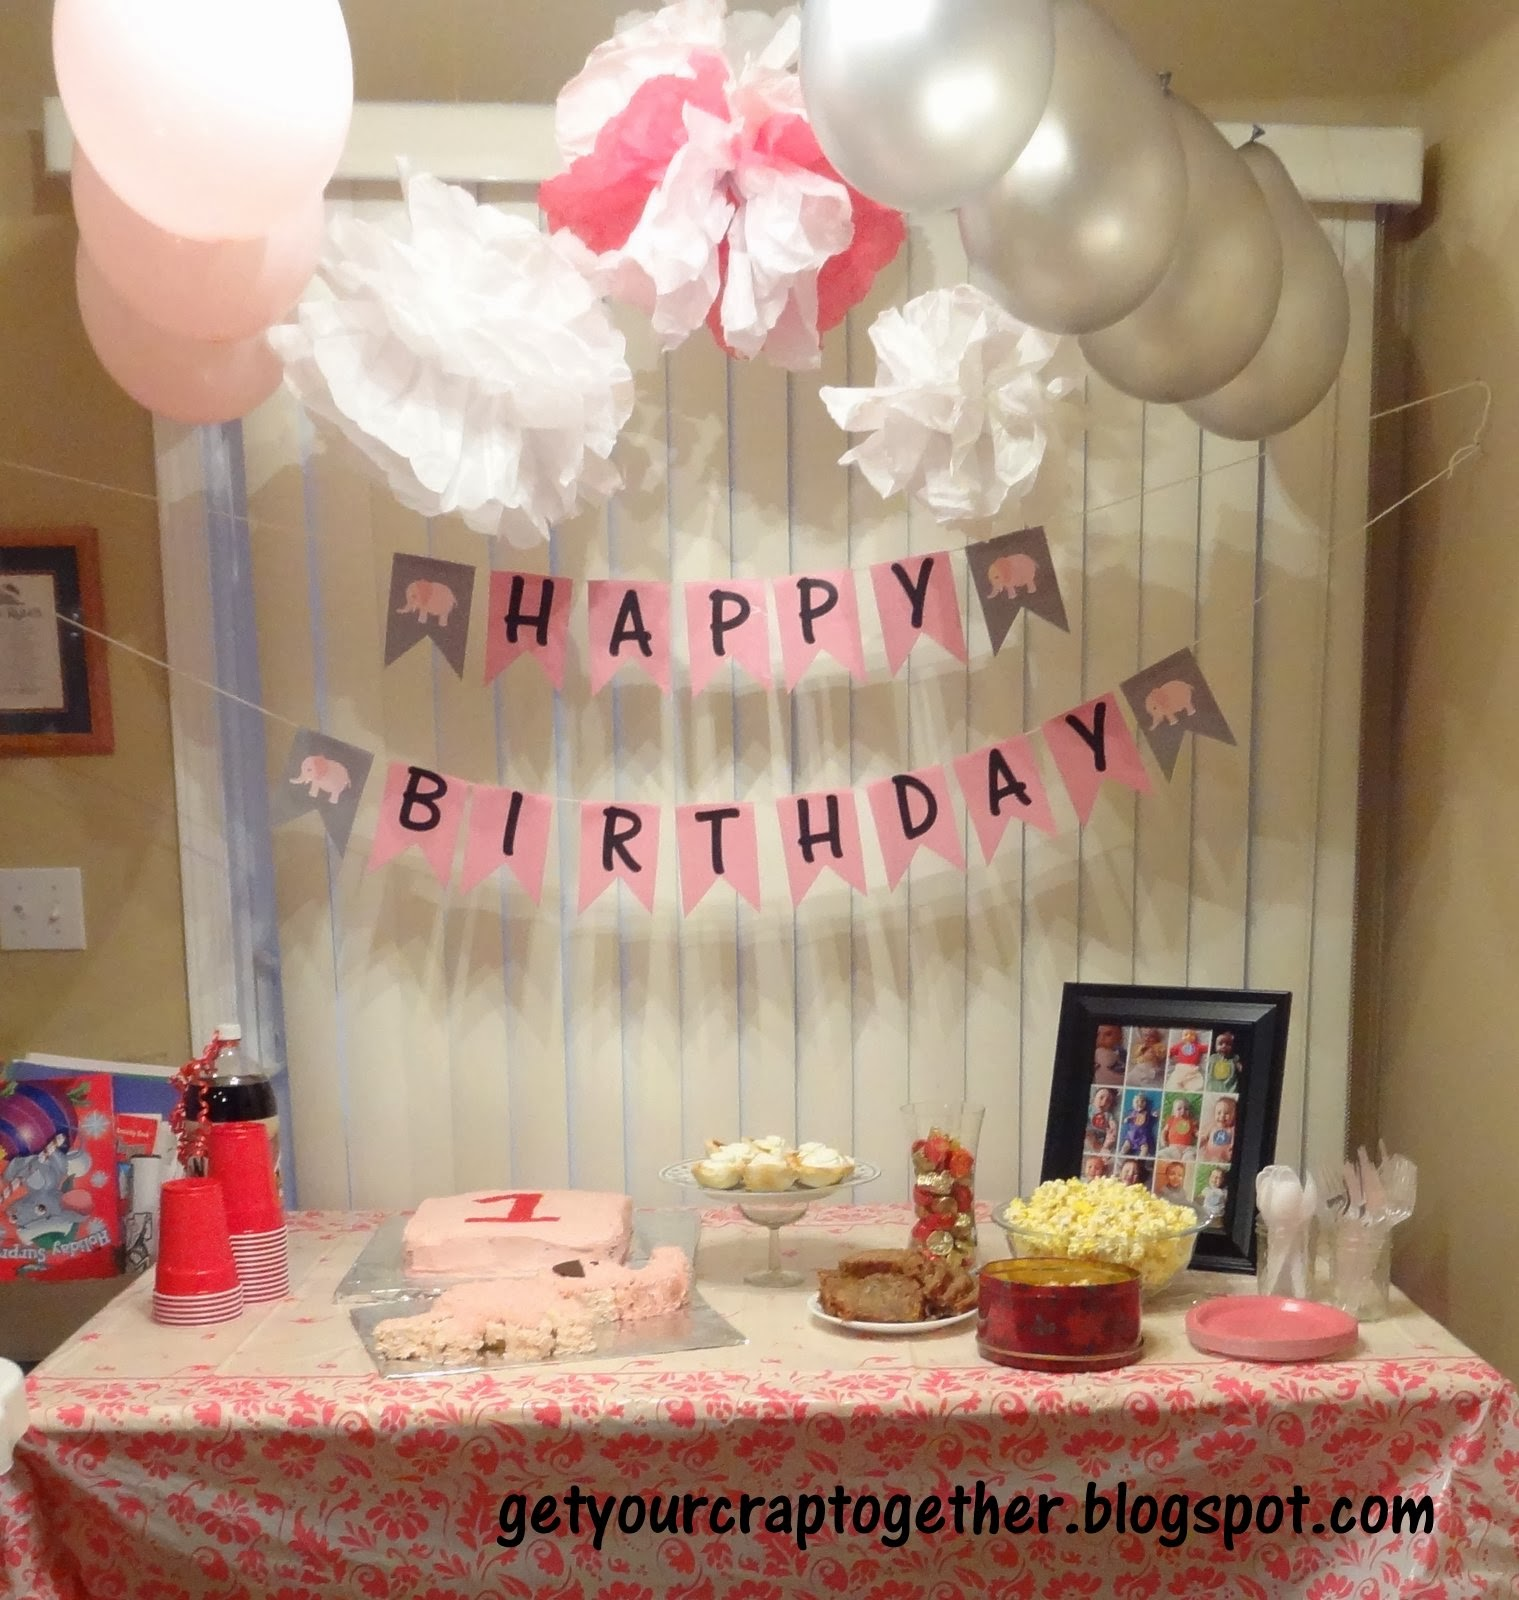 Decoration Ideas For Birthday Party At Home Husband High School